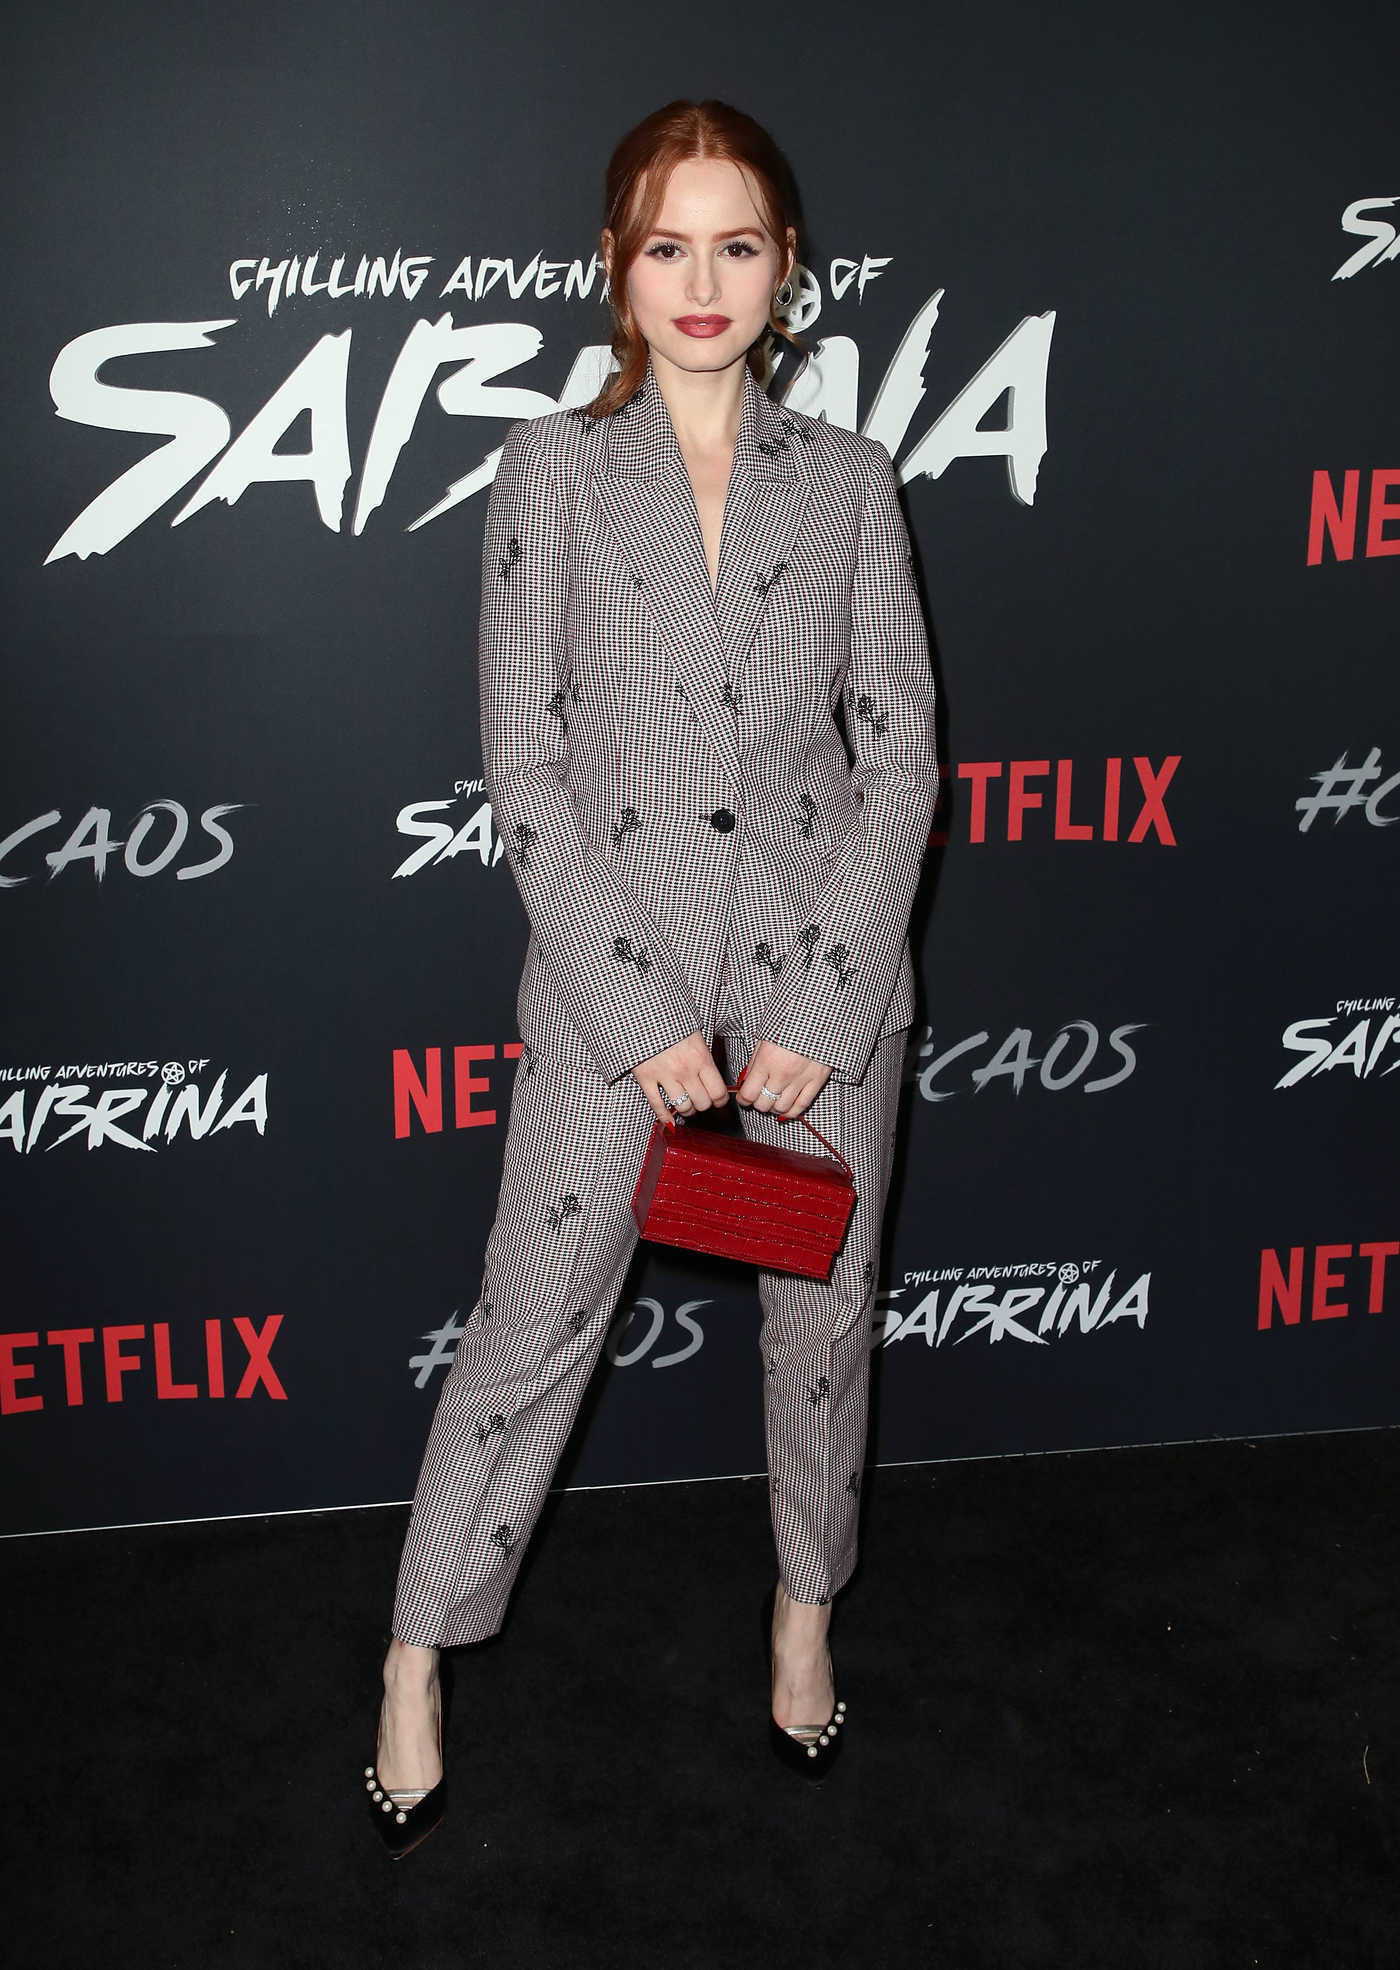 Madelaine Petsch Attends the Chilling Adventures of Sabrina Premiere in LA 10/19/2018